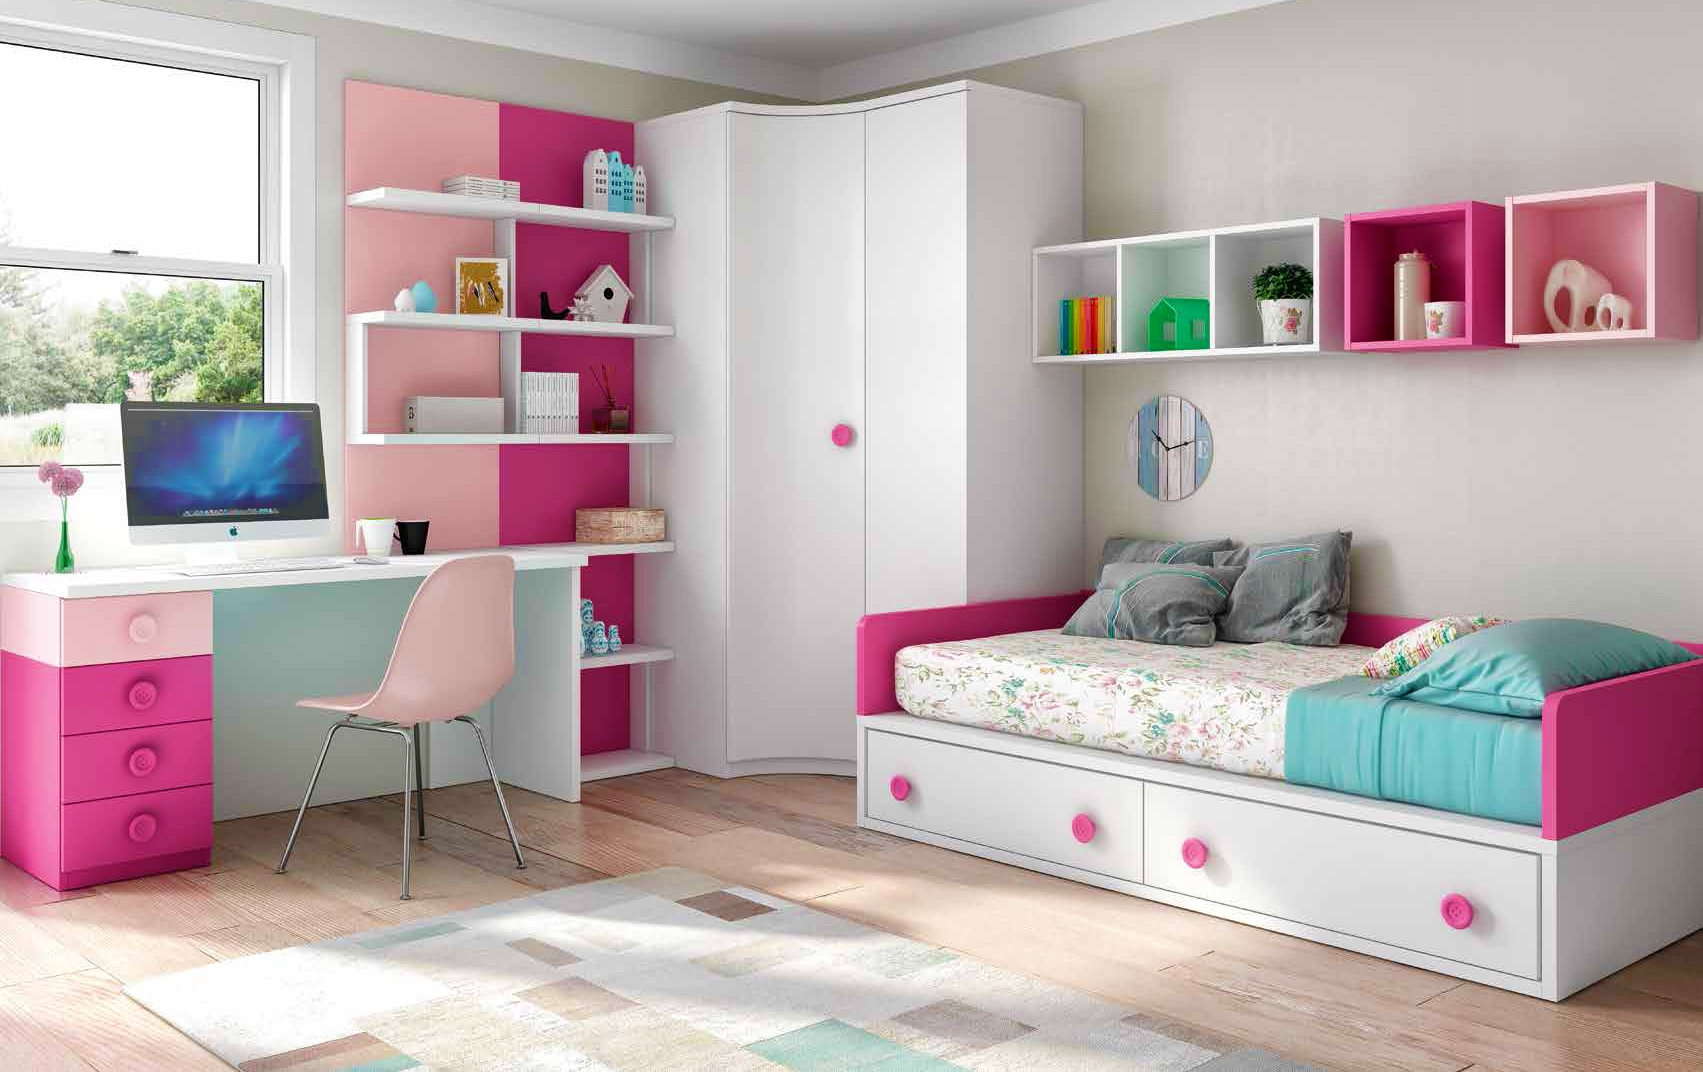 chambre d enfant fille decoration couleur de peinture pour chambre fille couleur de superb. Black Bedroom Furniture Sets. Home Design Ideas